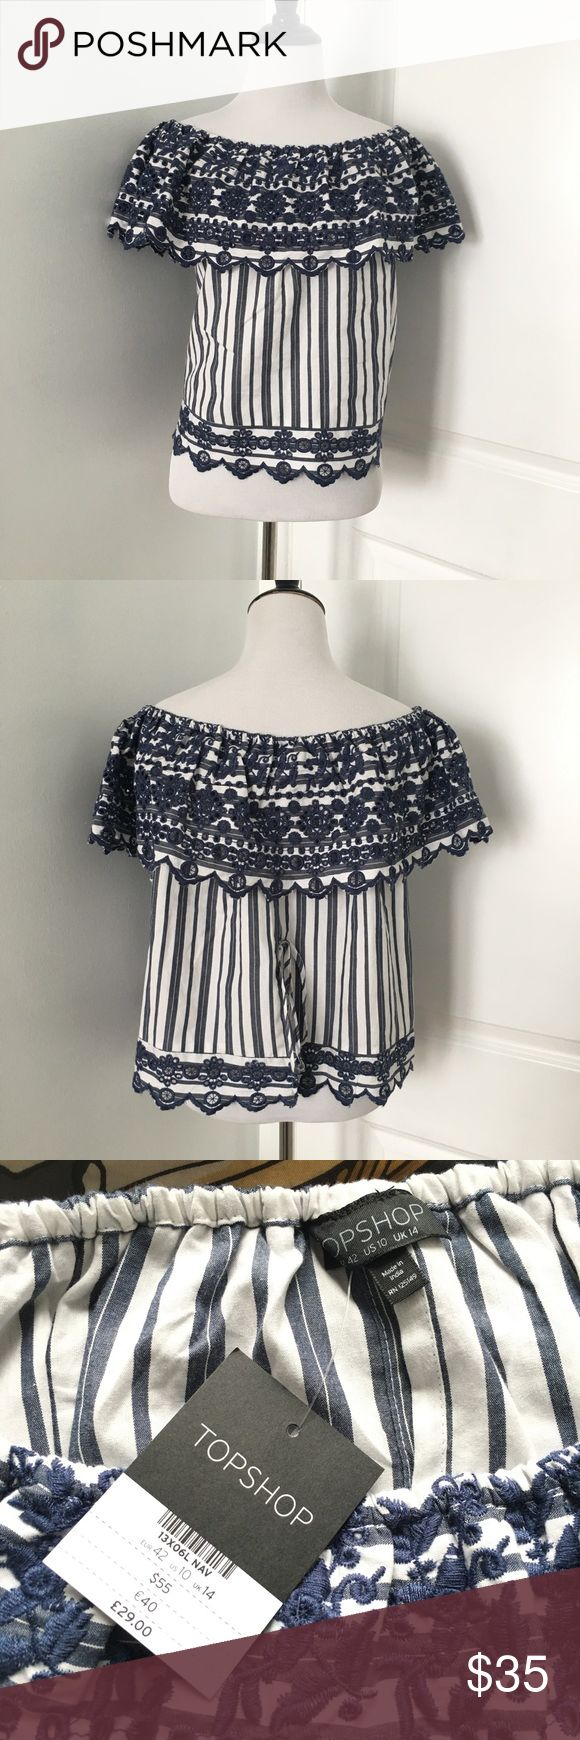 Topshop Bardot Top Blue and white striped off the Shoulder Bardot Top with an embroidered scalloped Hem and embroidery and the Top too. Open Back that ties together with straps  Size 10  Brand new with tags! Topshop Tops Blouses